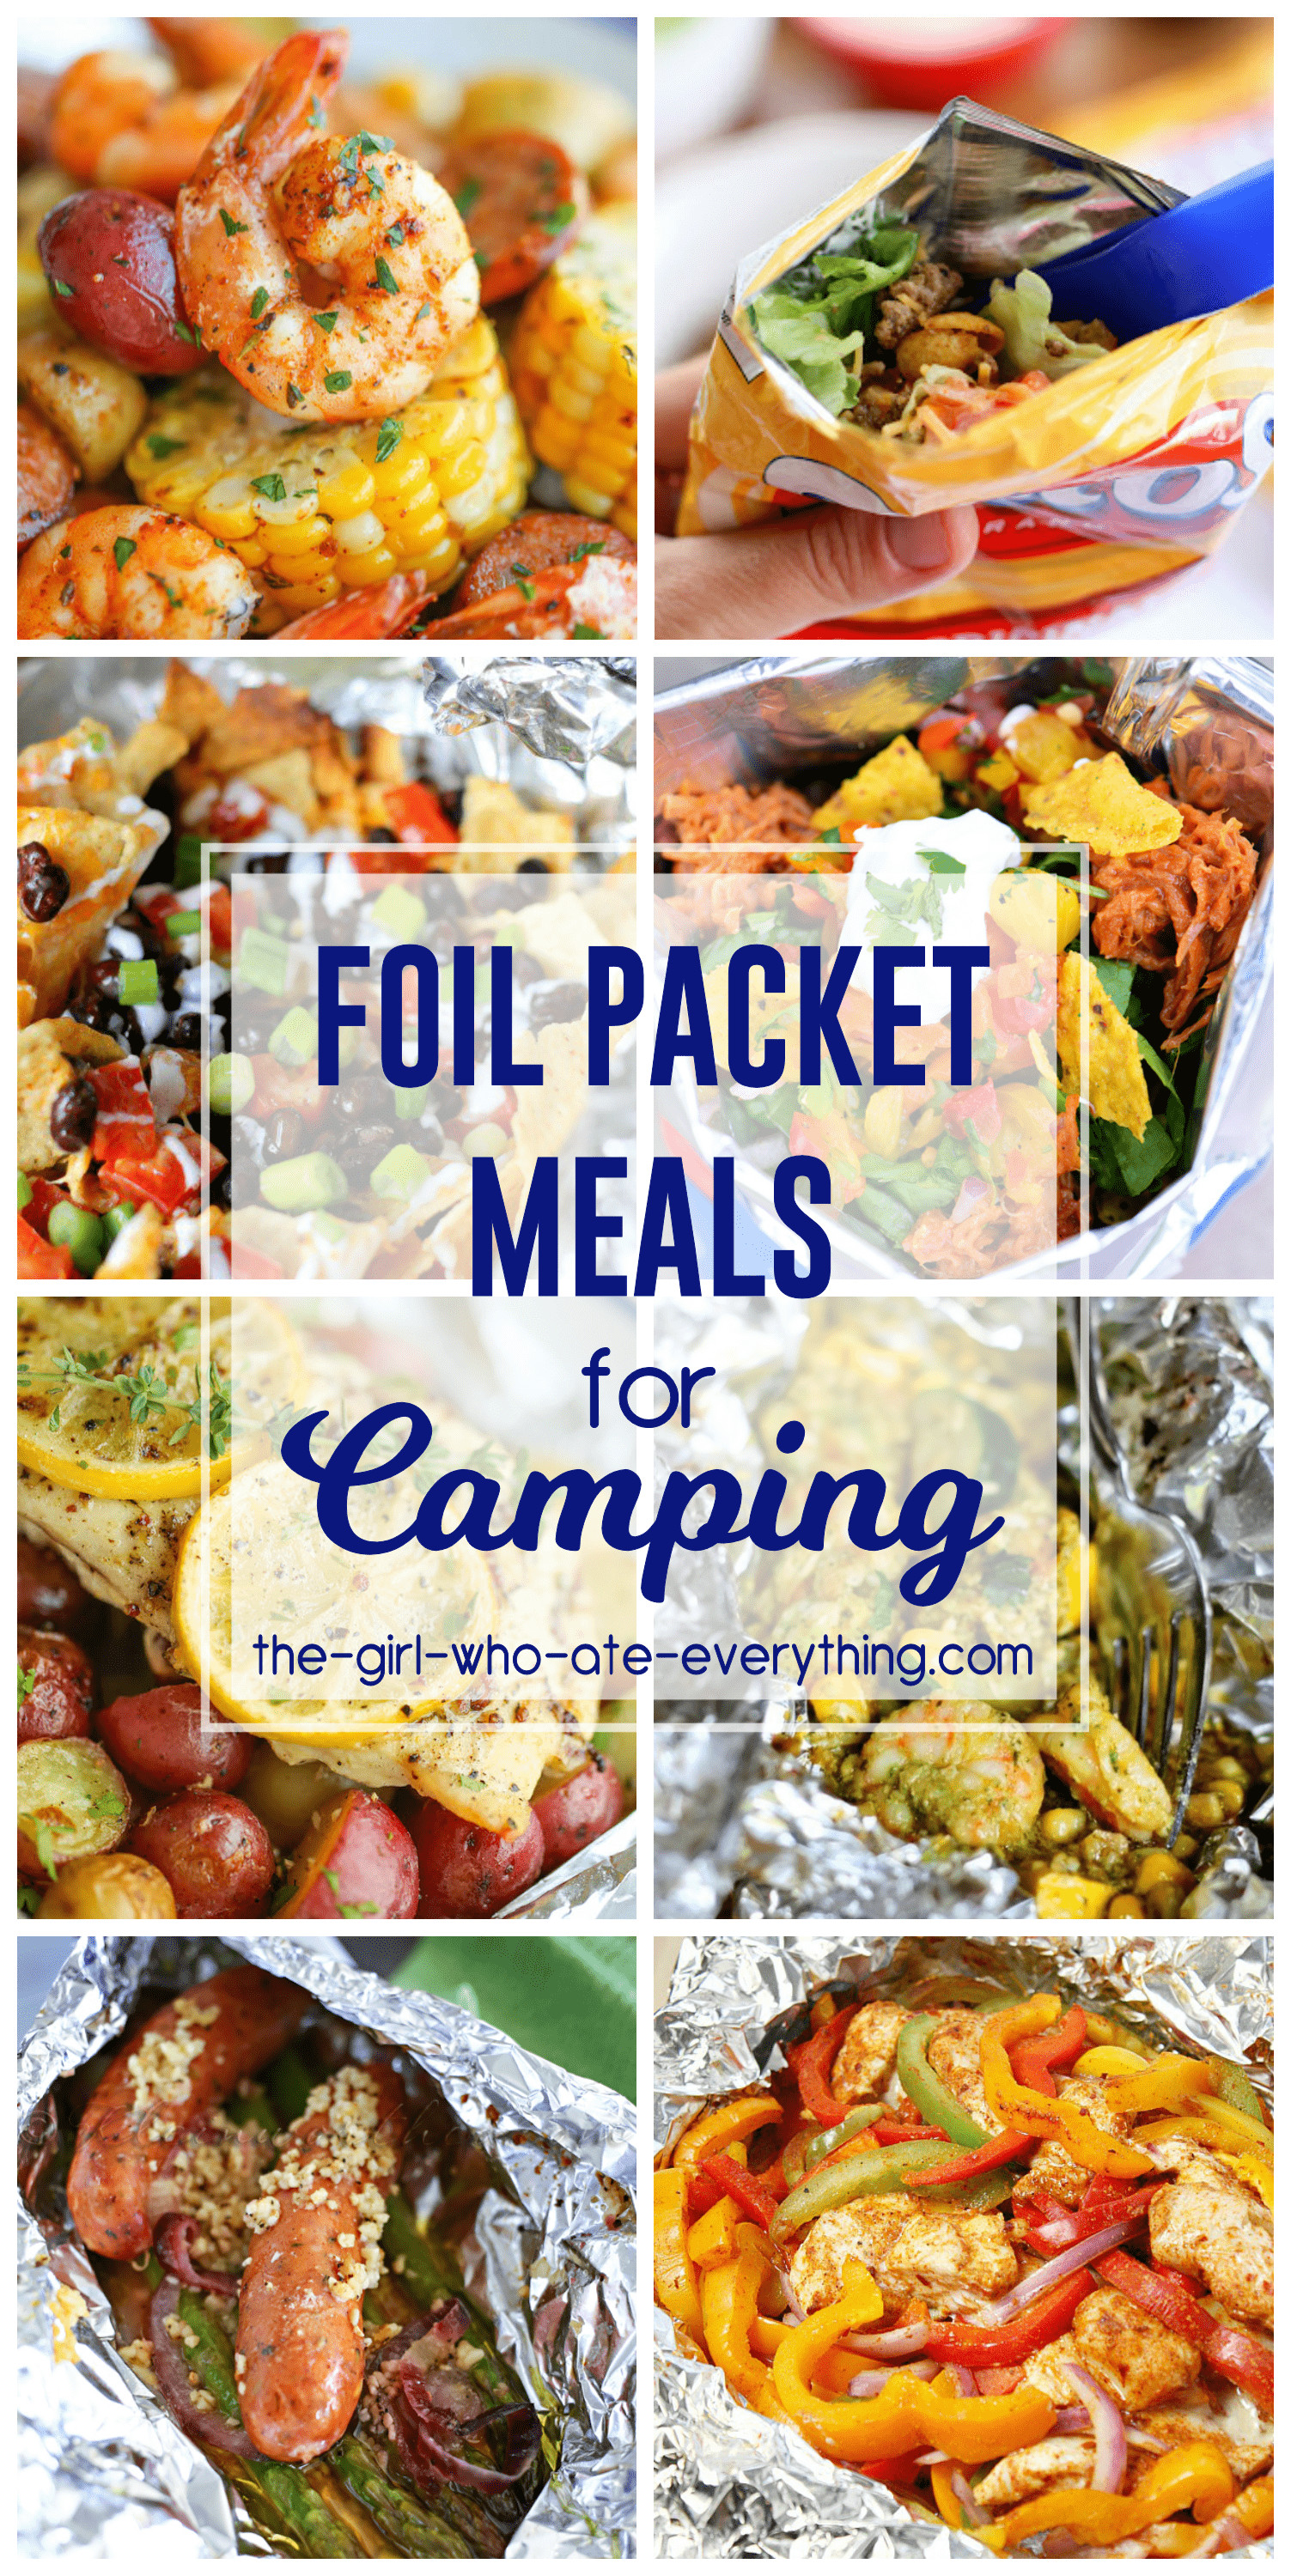 Foil Packet Dinners Camping  Foil Packet Meals for Camping The Girl Who Ate Everything